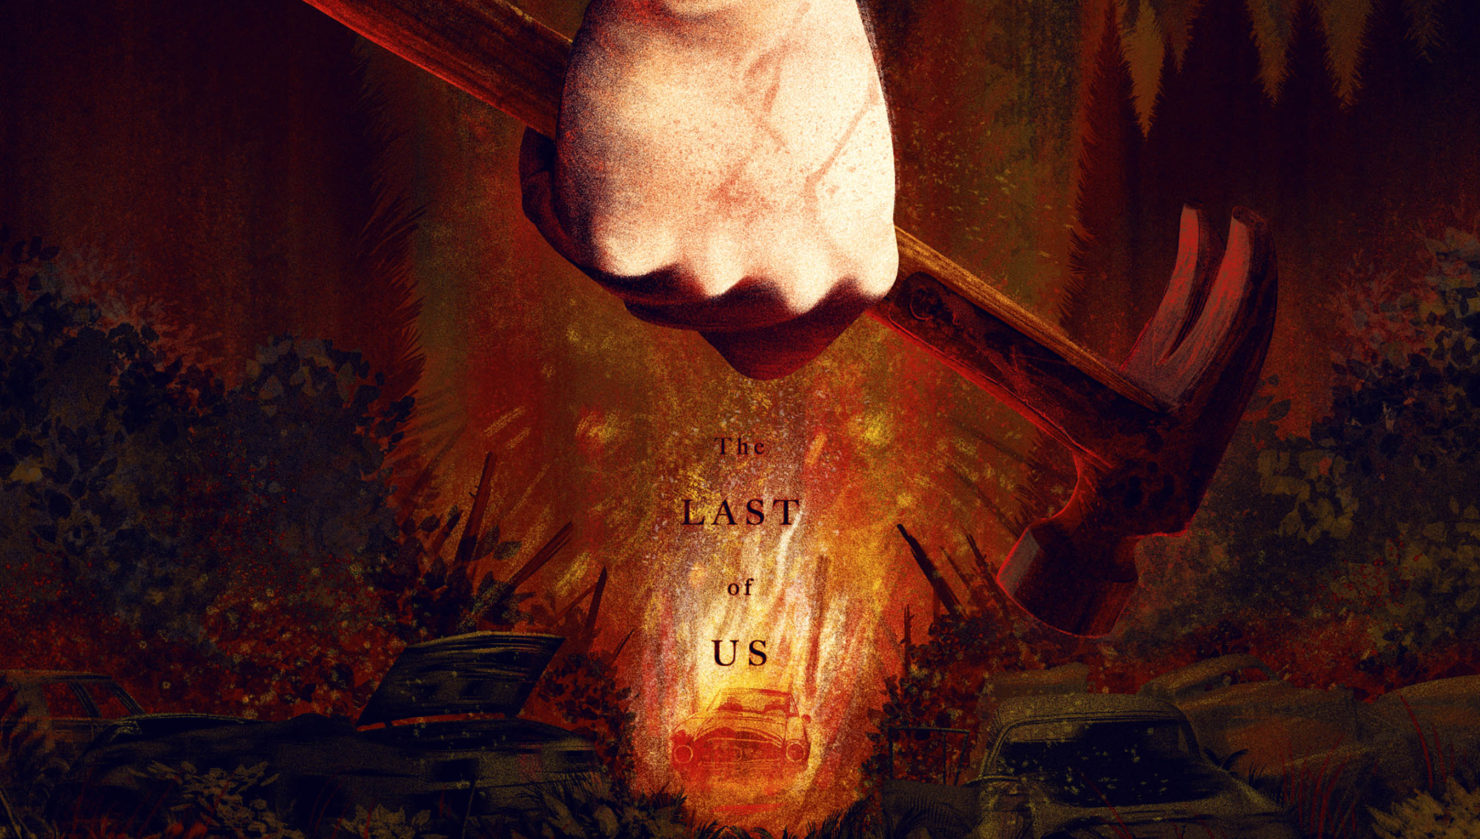 the last of us 2 poster